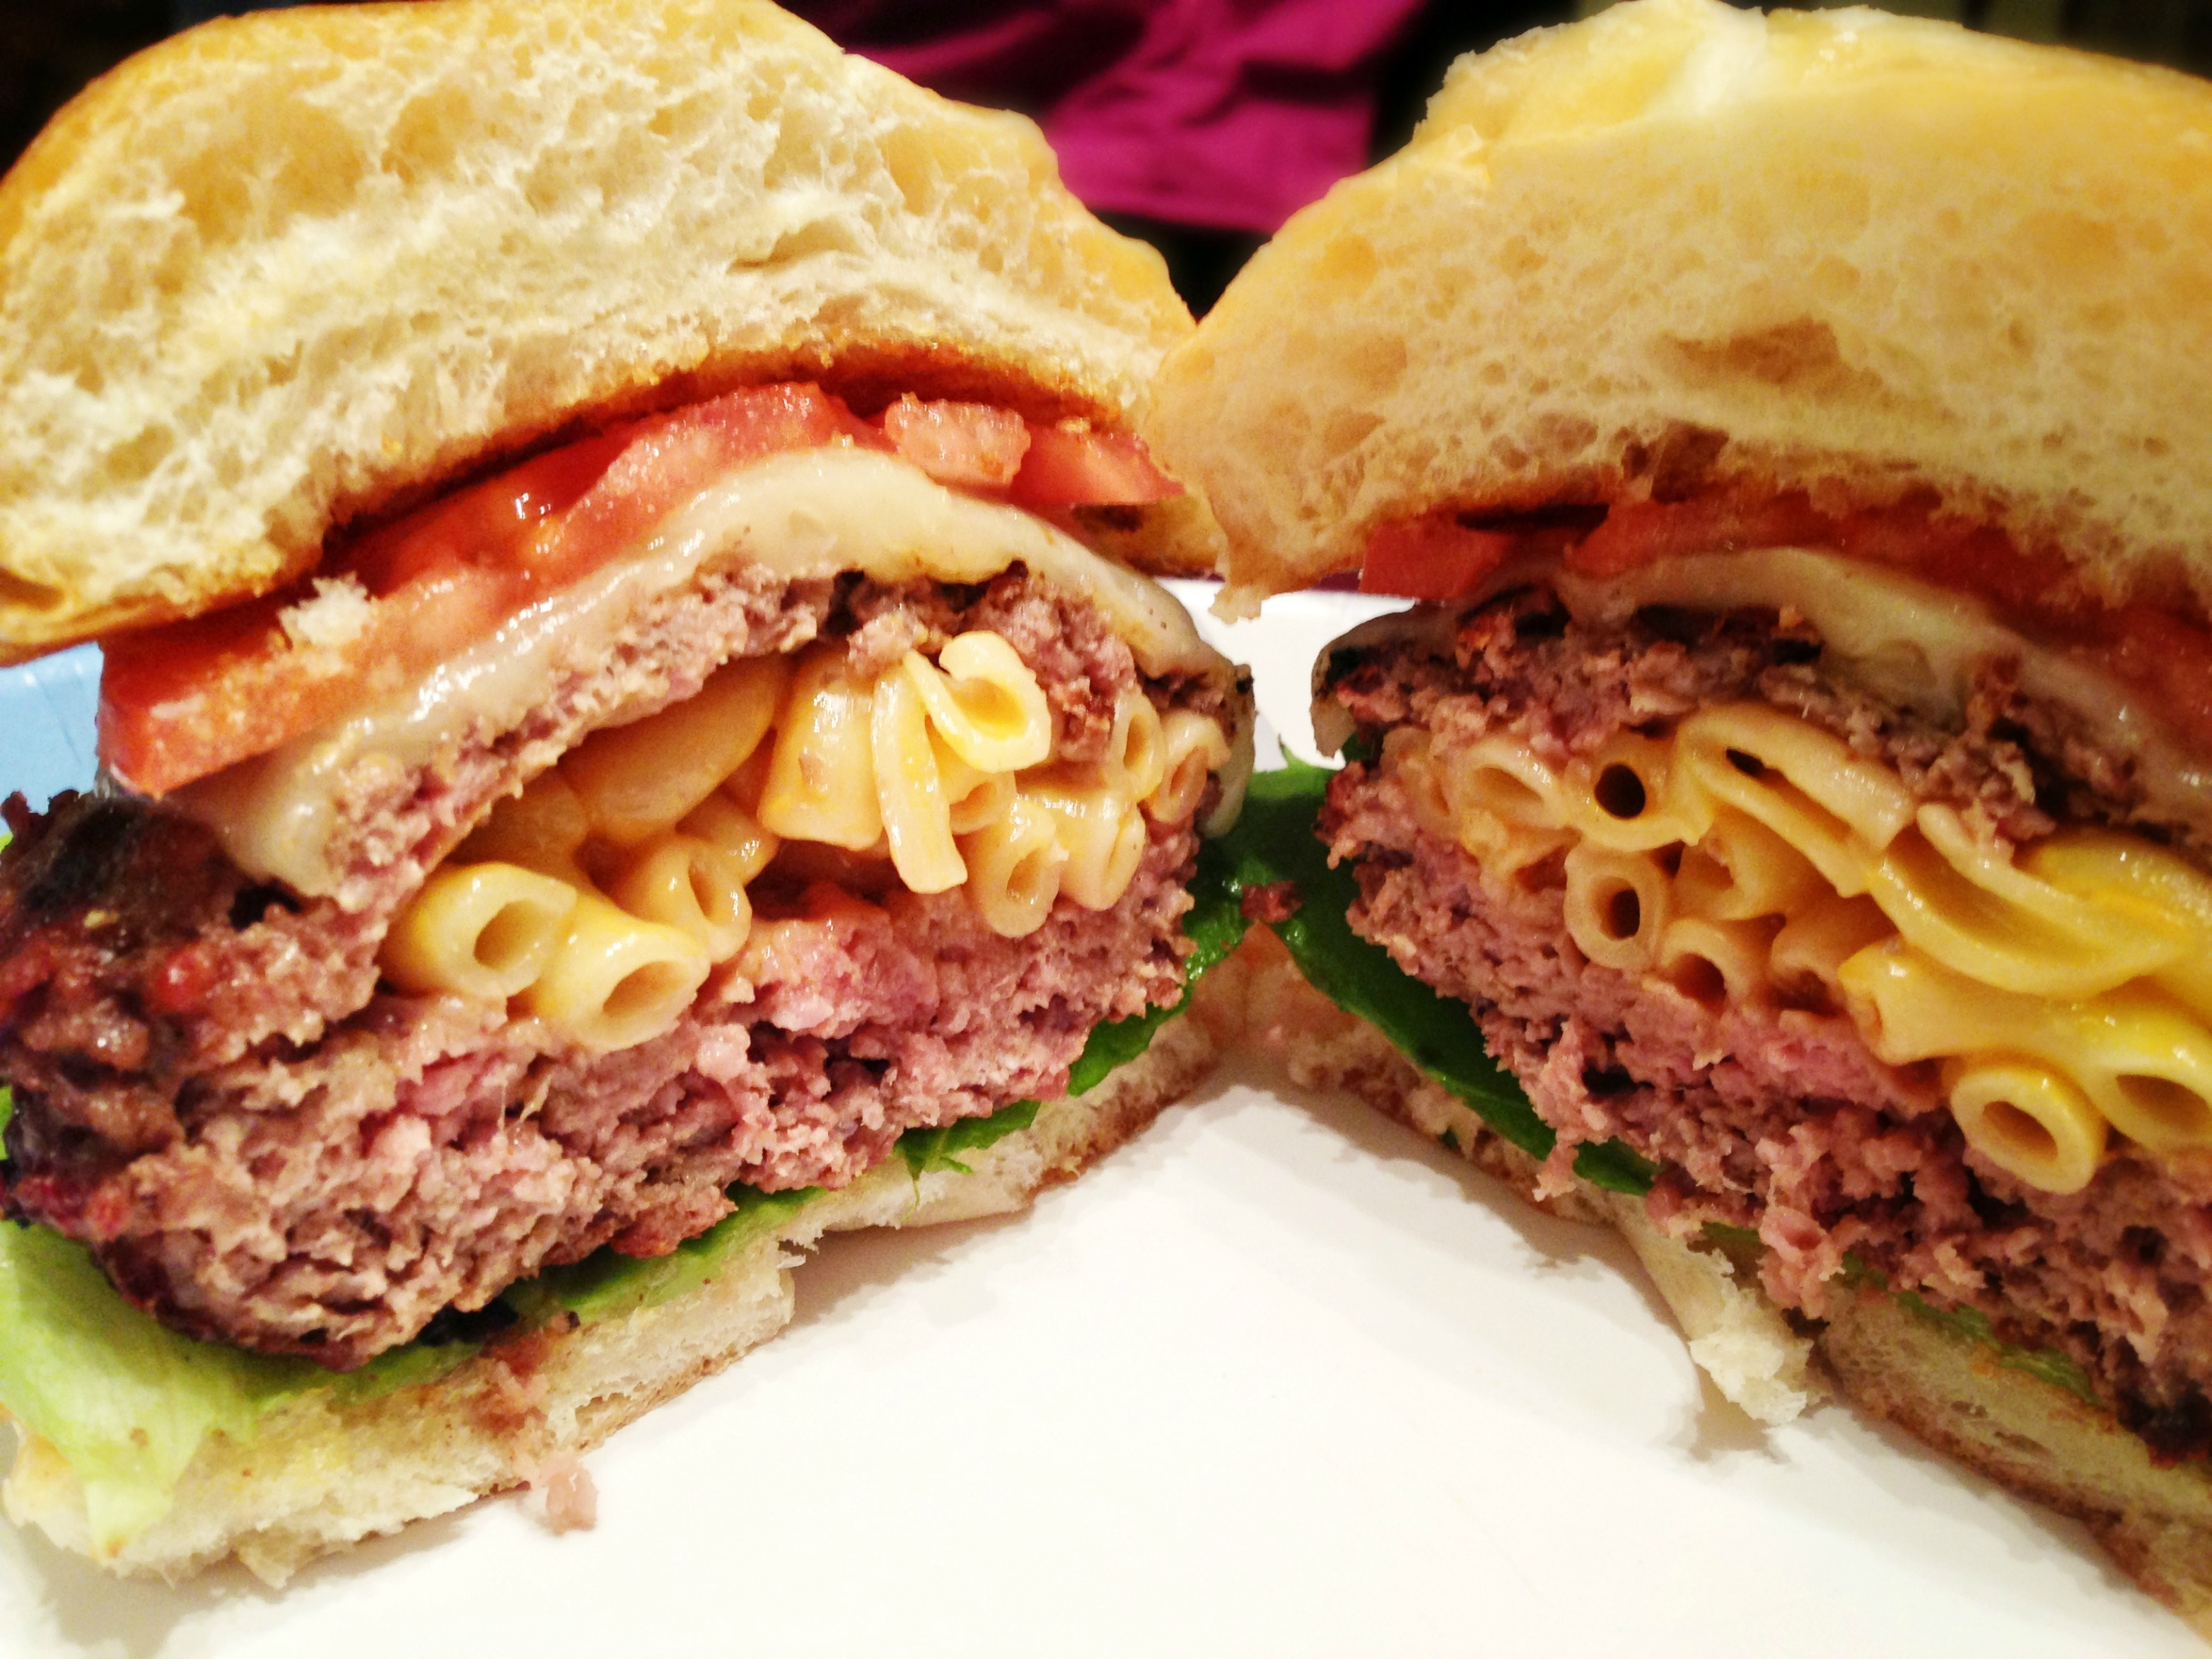 Mac & Cheese Stuffed Burger